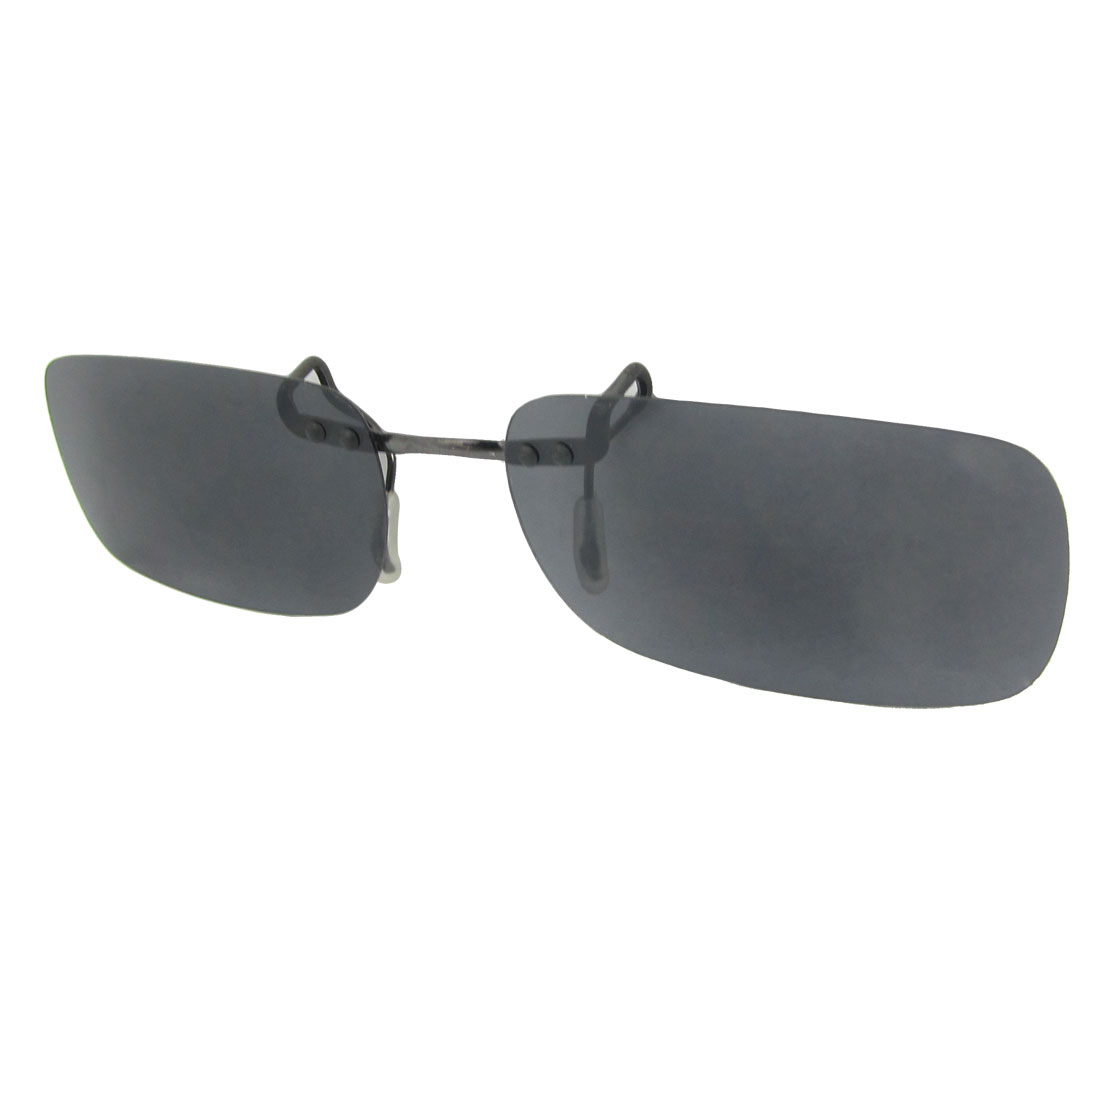 Clip On Sunglasses Polarized 25